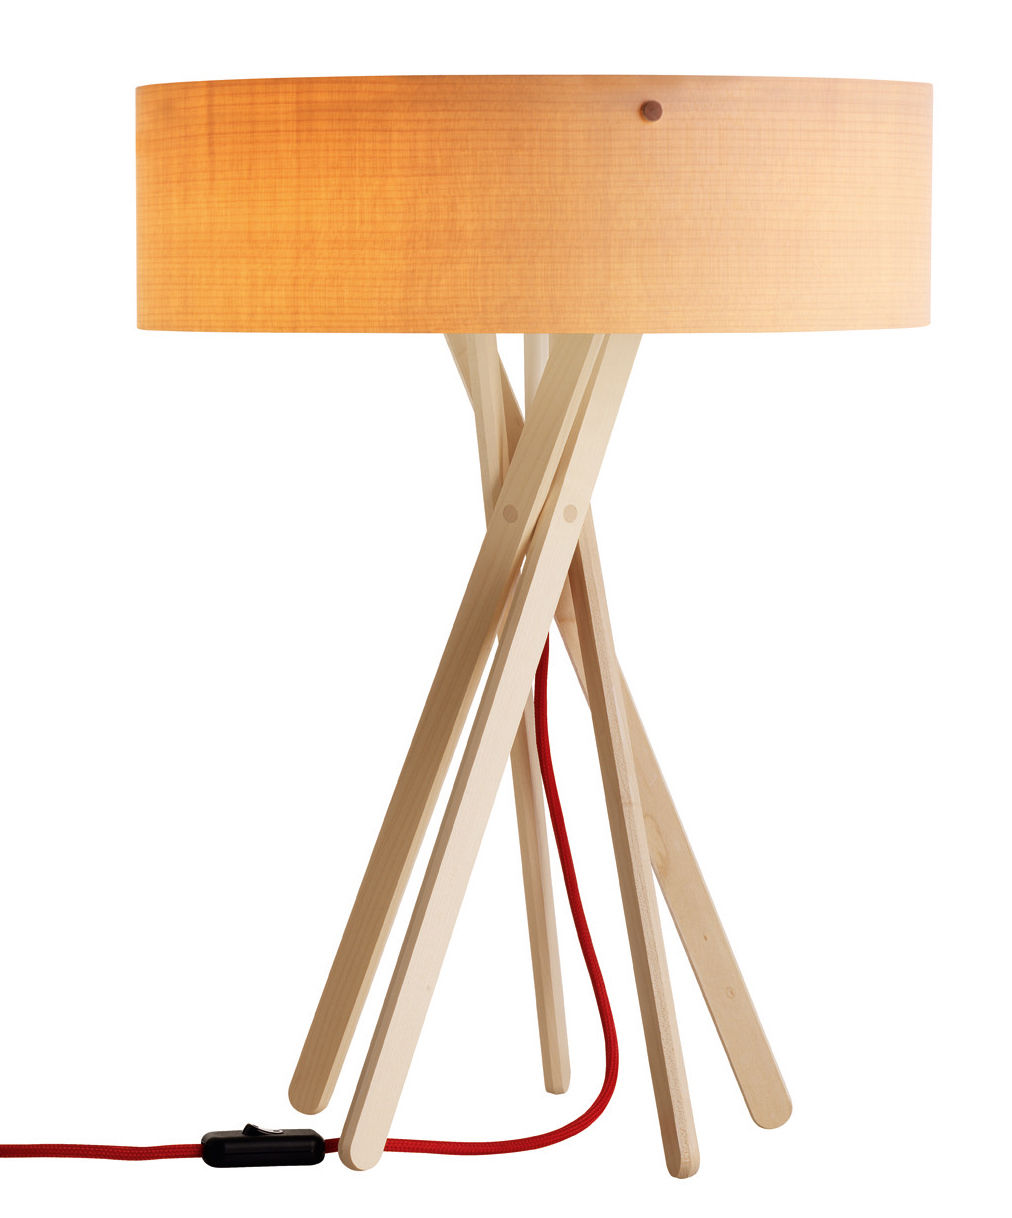 Lighting - Table Lamps - Arba Table lamp by Belux - Wood - Oiled maple